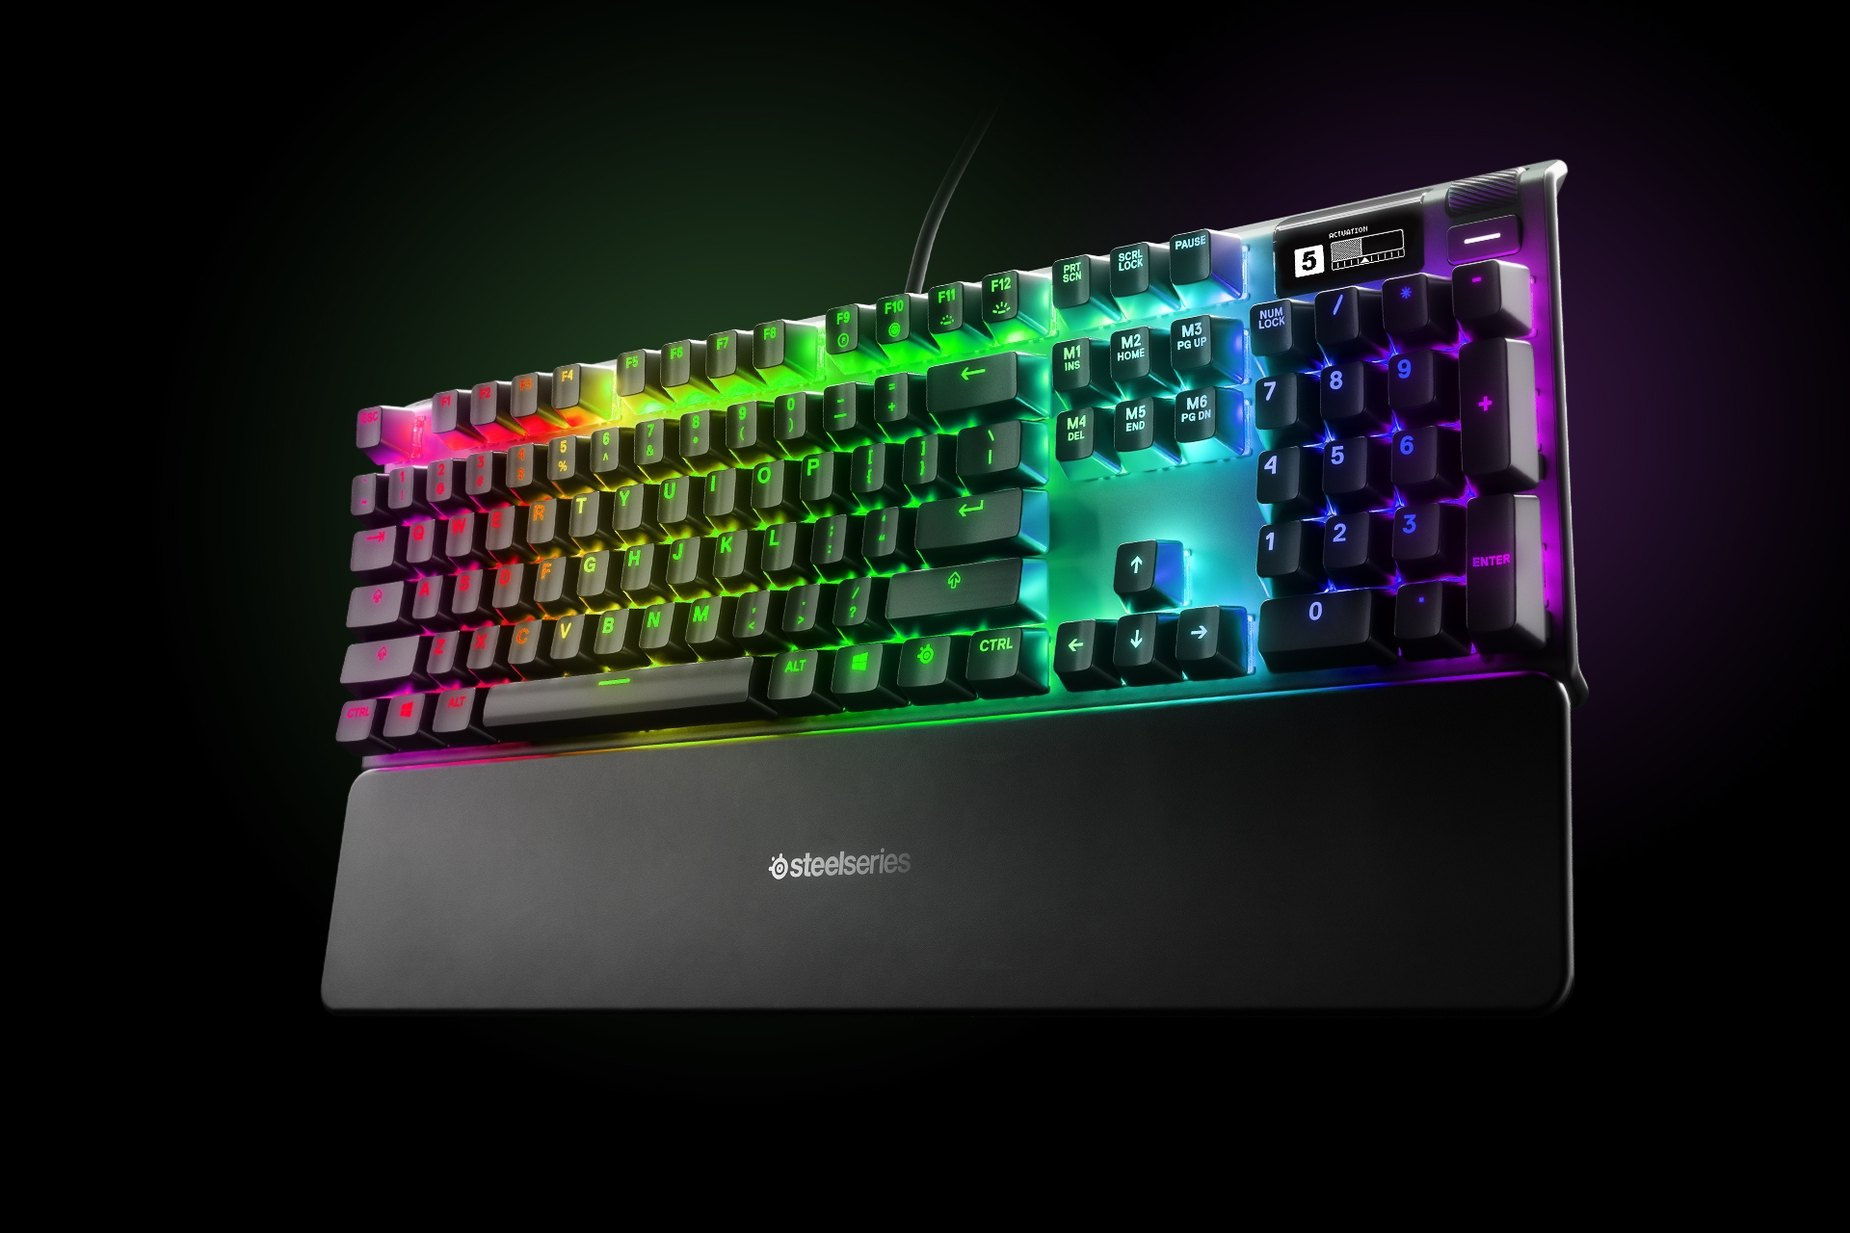 Japonca - Apex Pro gaming keyboard with the illumination lit up on dark background, also shows the OLED screen and controls used to change settings, switch actuation, and adjust audio